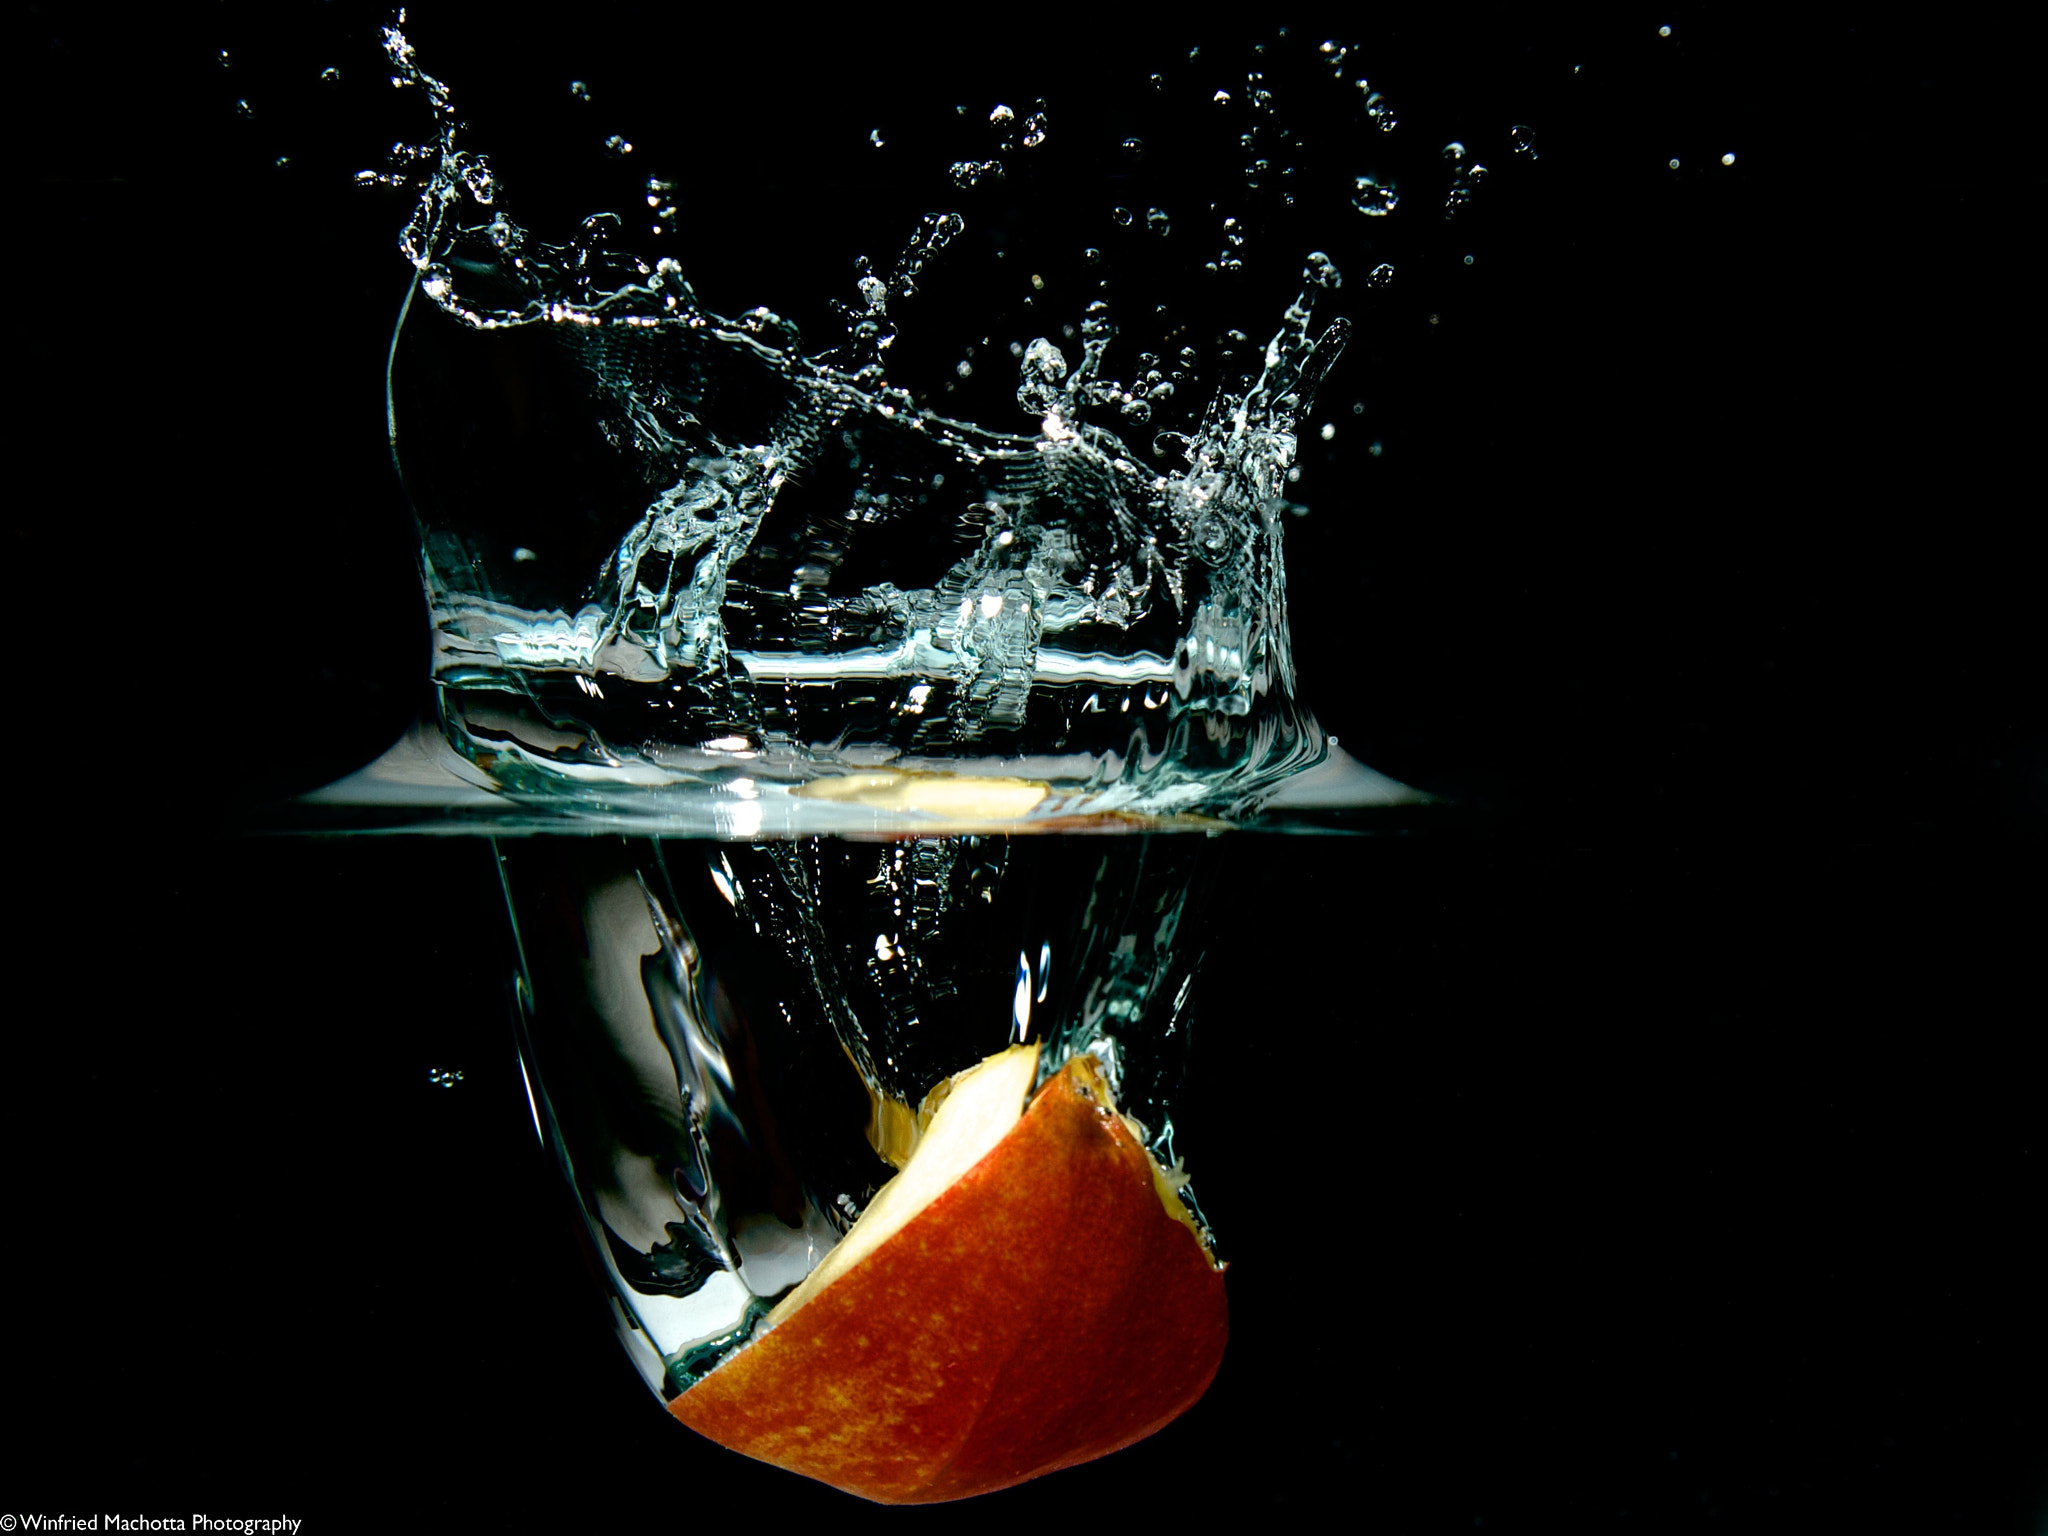 Photograph Apple Dive by Winfried Machotta on 500px